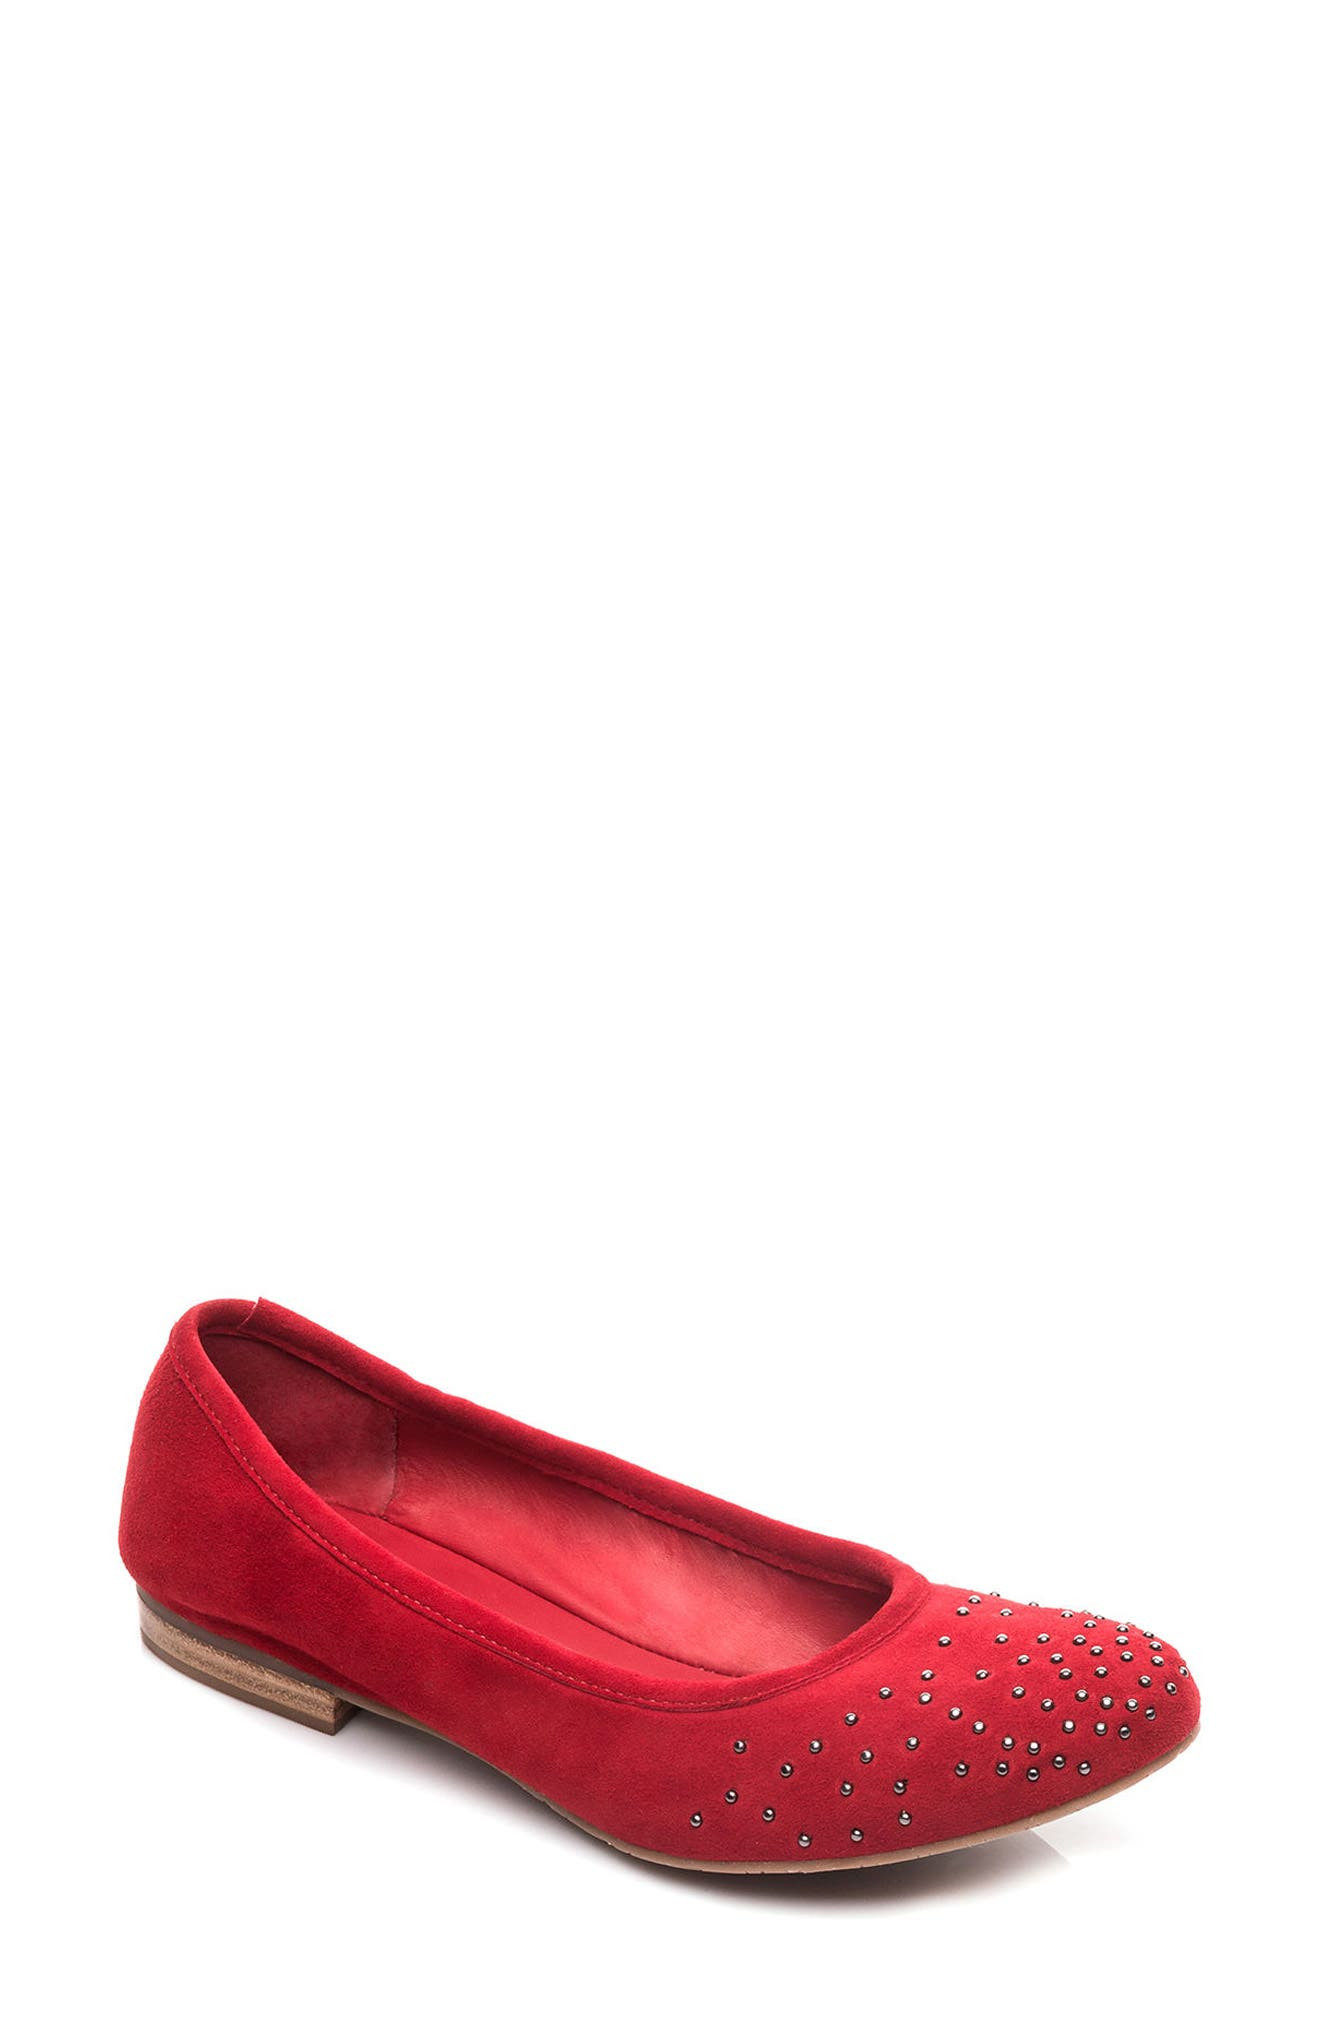 Dallas Studded Flat,                             Main thumbnail 1, color,                             Red Suede